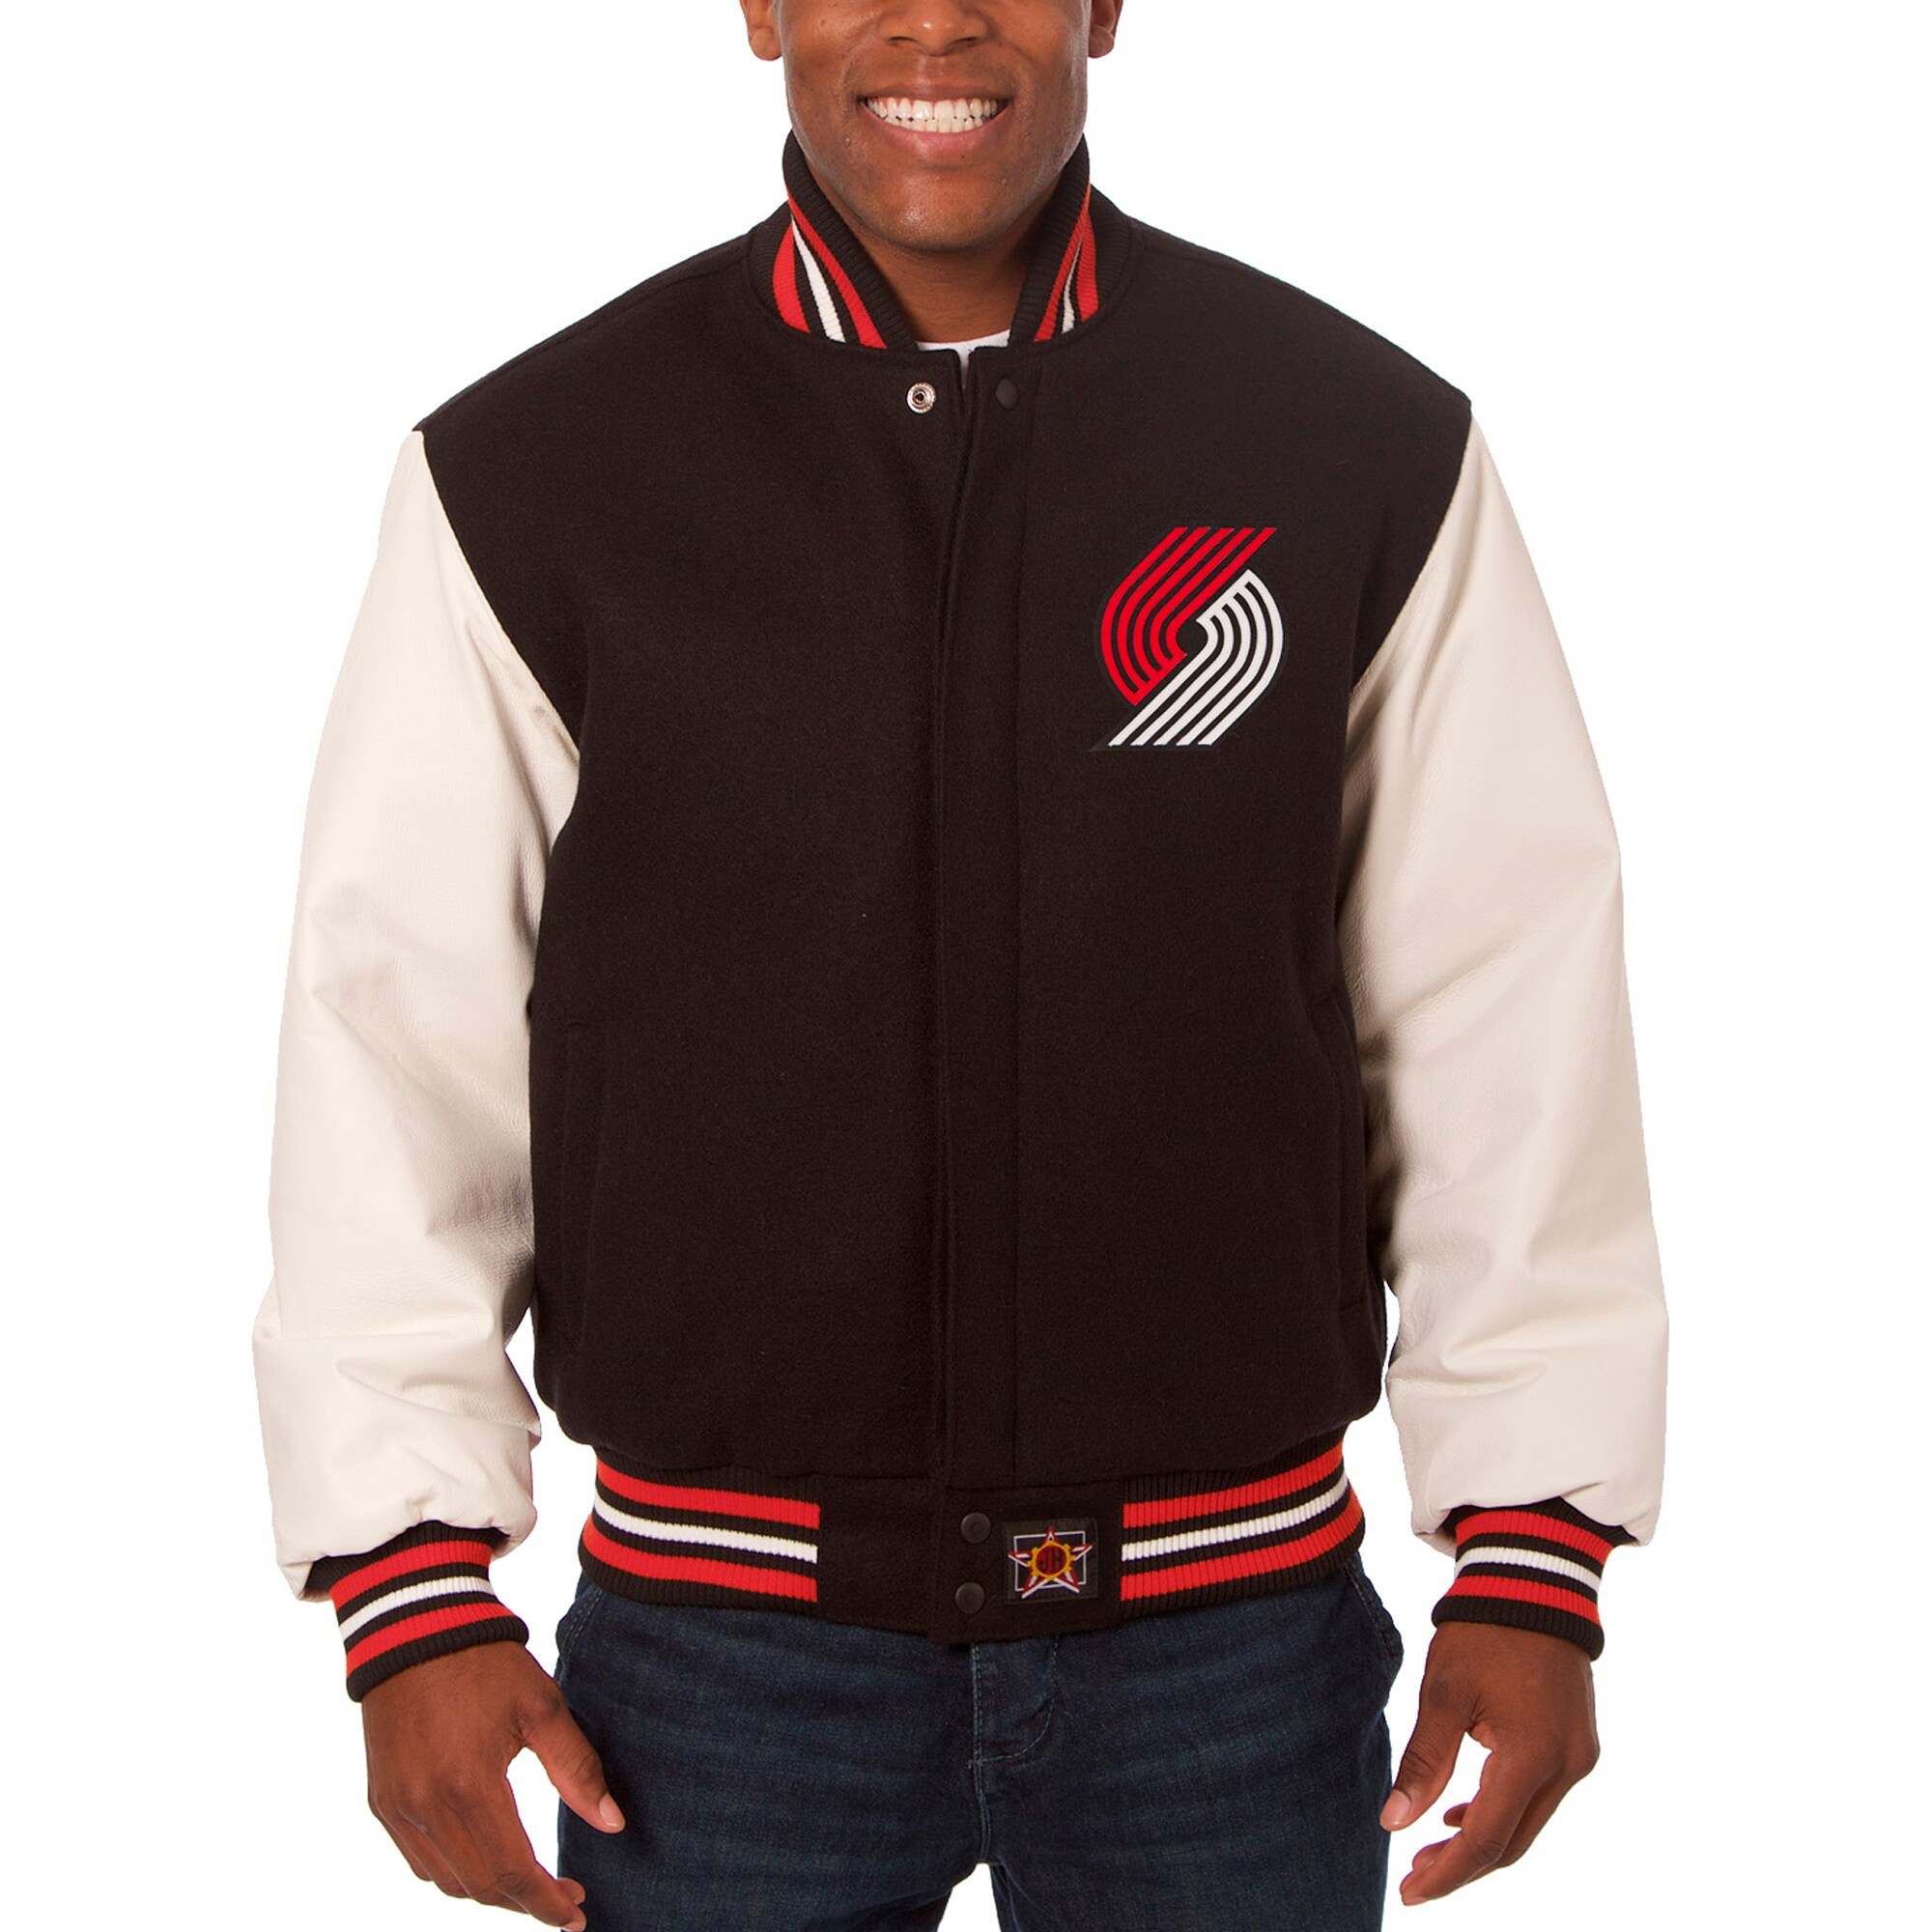 Portland Trail Blazers JH Design Big & Tall Wool & Leather Full-Snap Jacket - Black/White